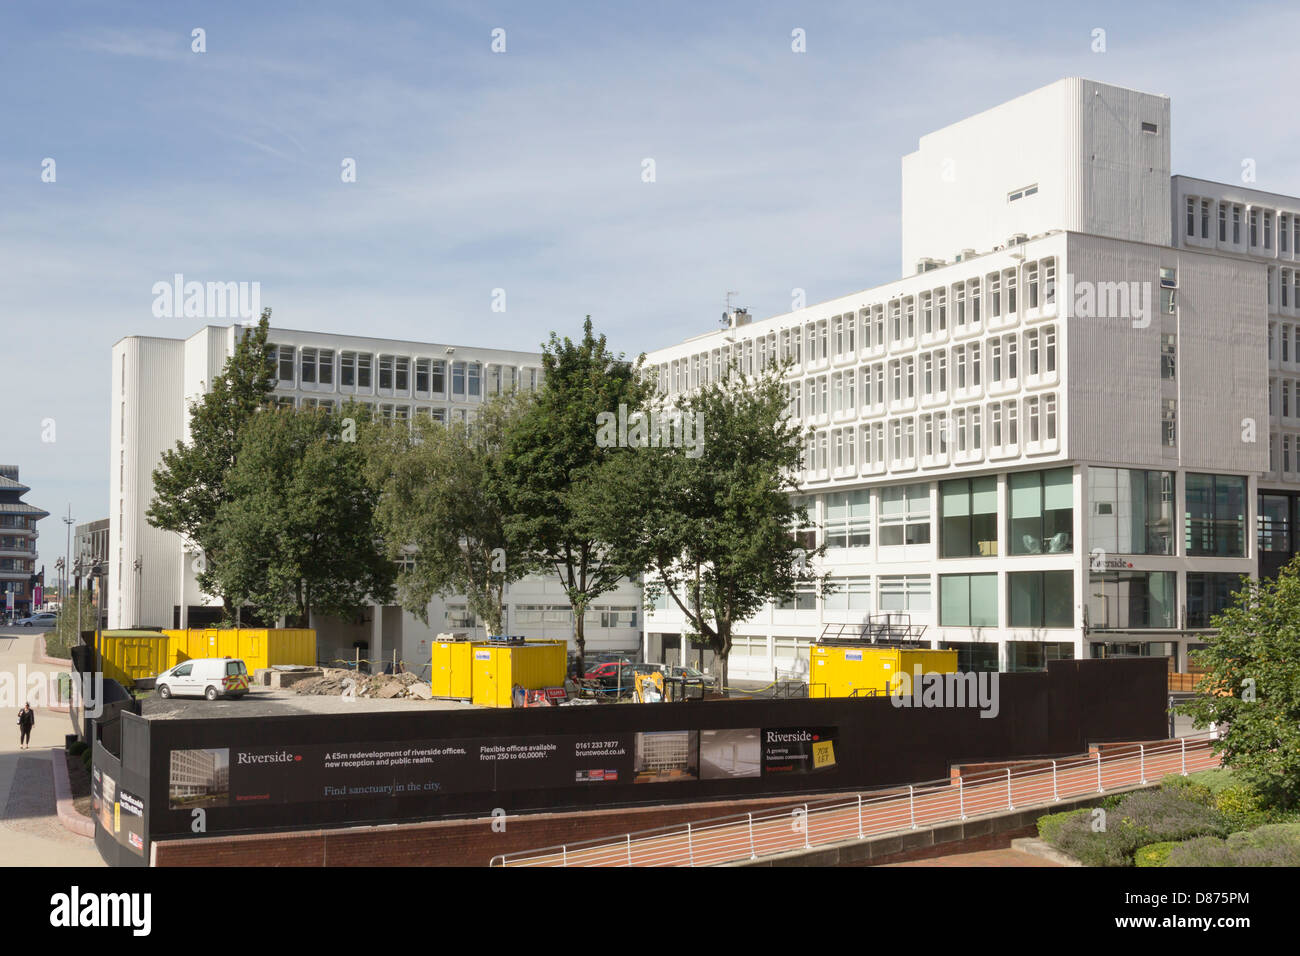 Riverside office building, owned  Bruntwood Ltd. Work in progress to build a new reception area and improve the - Stock Image